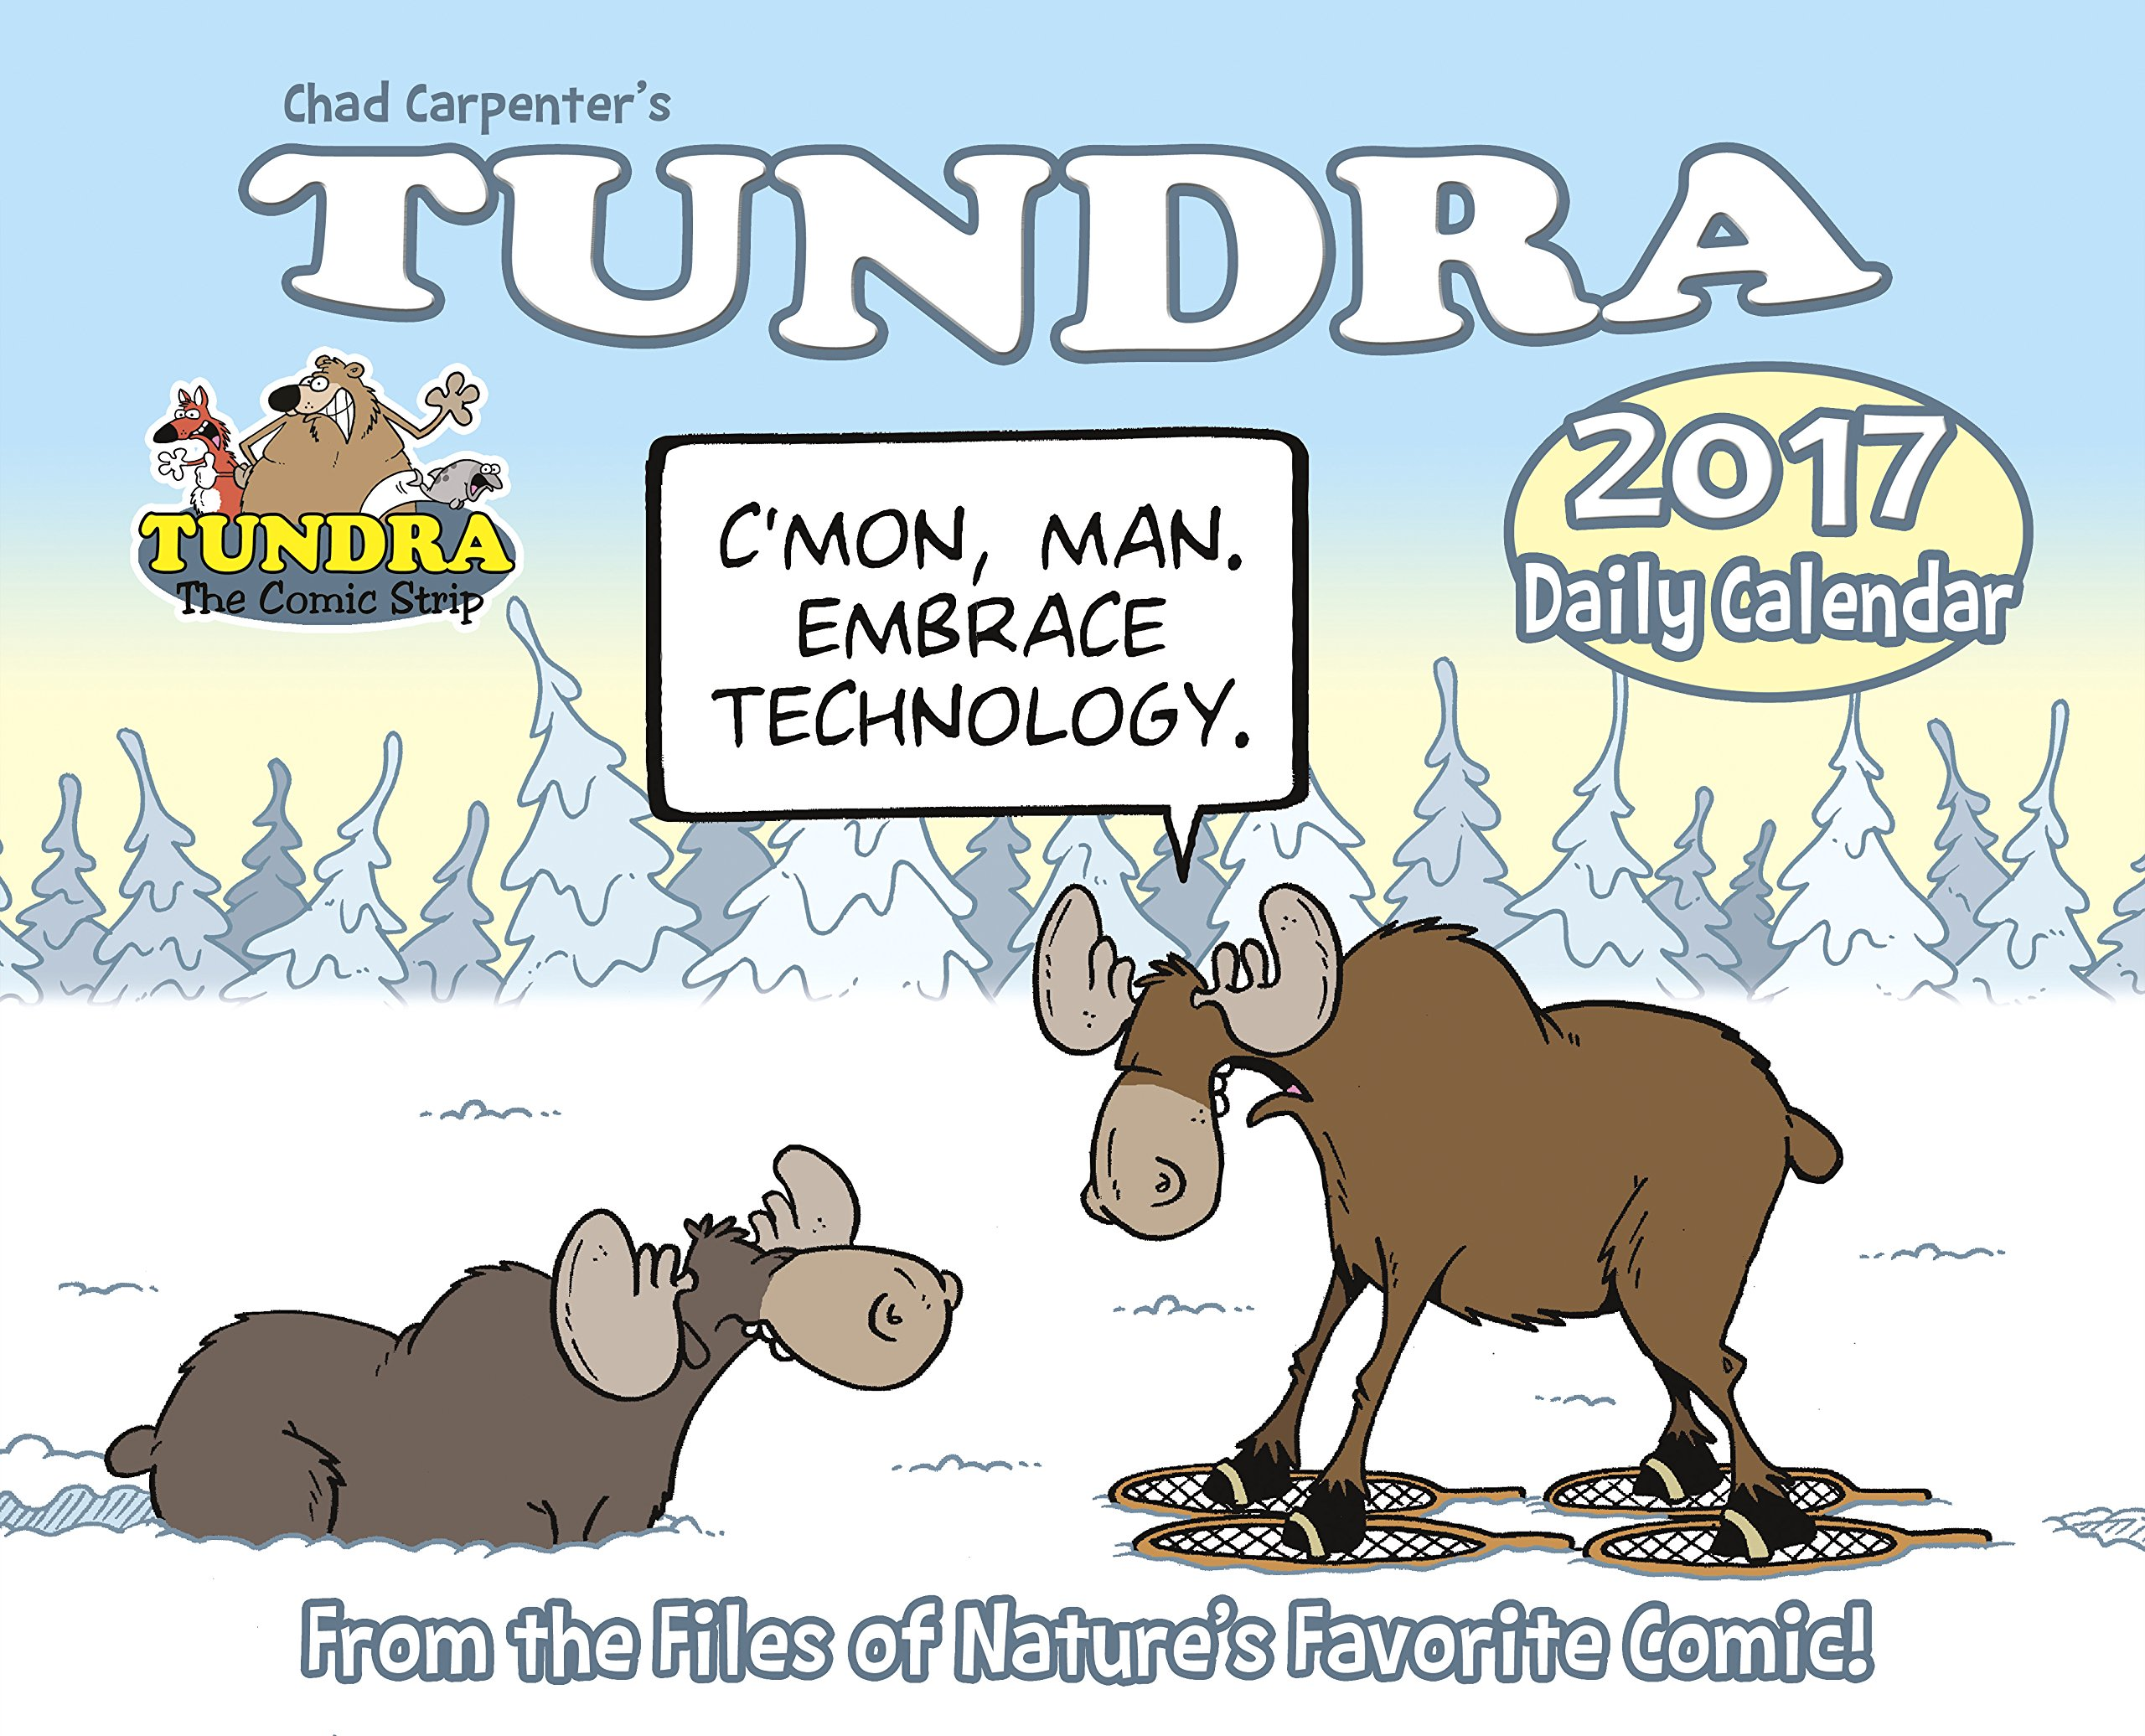 tundra 2017 box calendar chad carpenter 9781682342695 amazon com